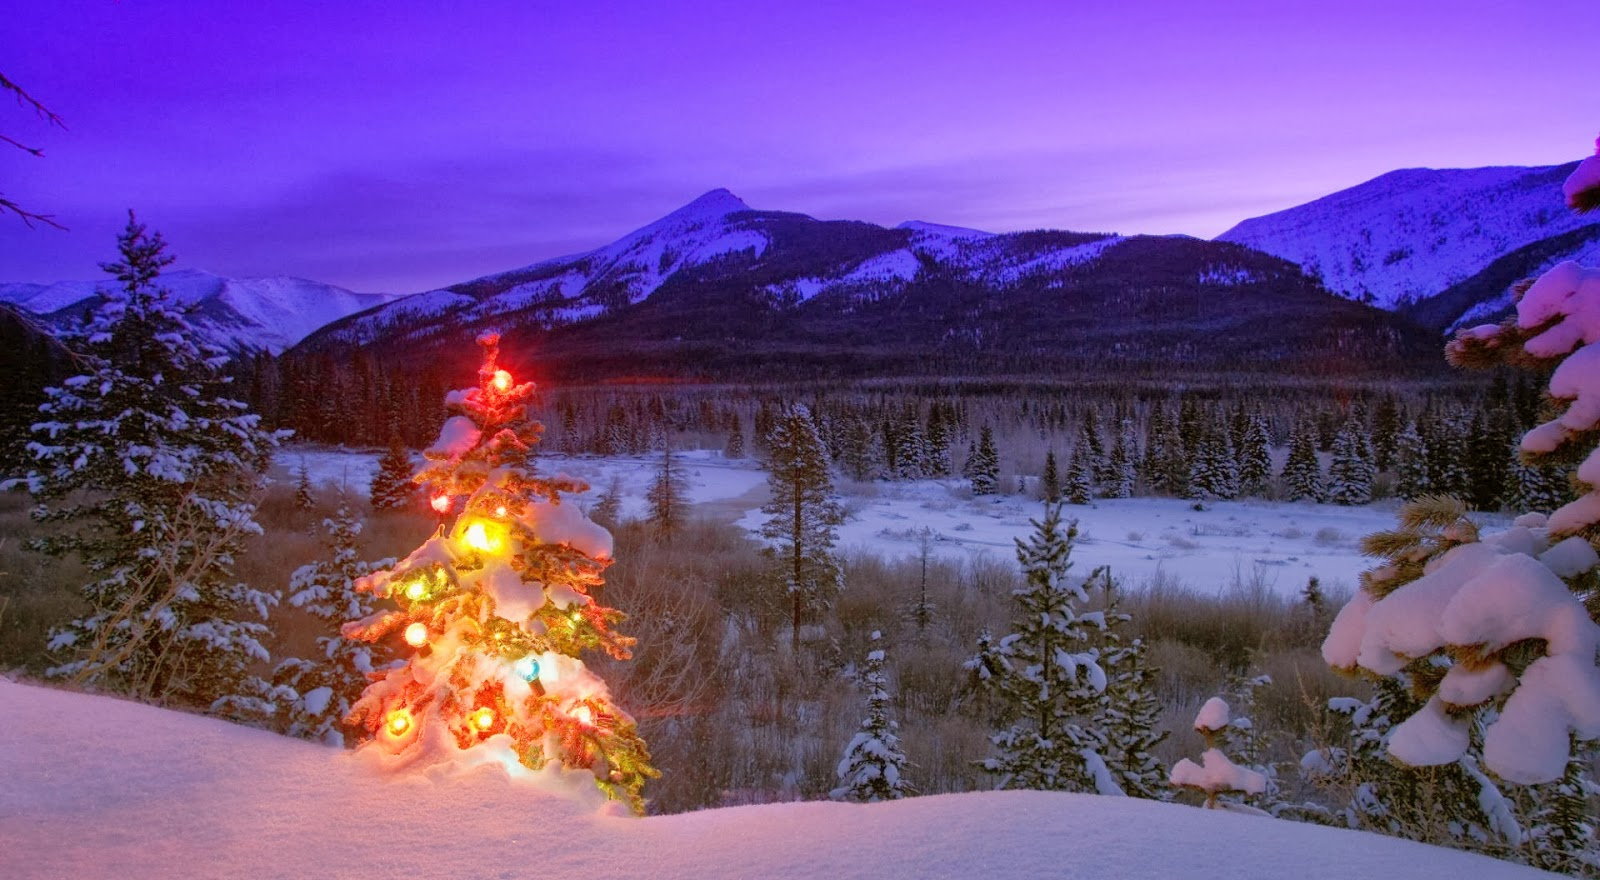 Zilveren Kerstboom Mooie Kerst Wallpapers | Hd Wallpapers